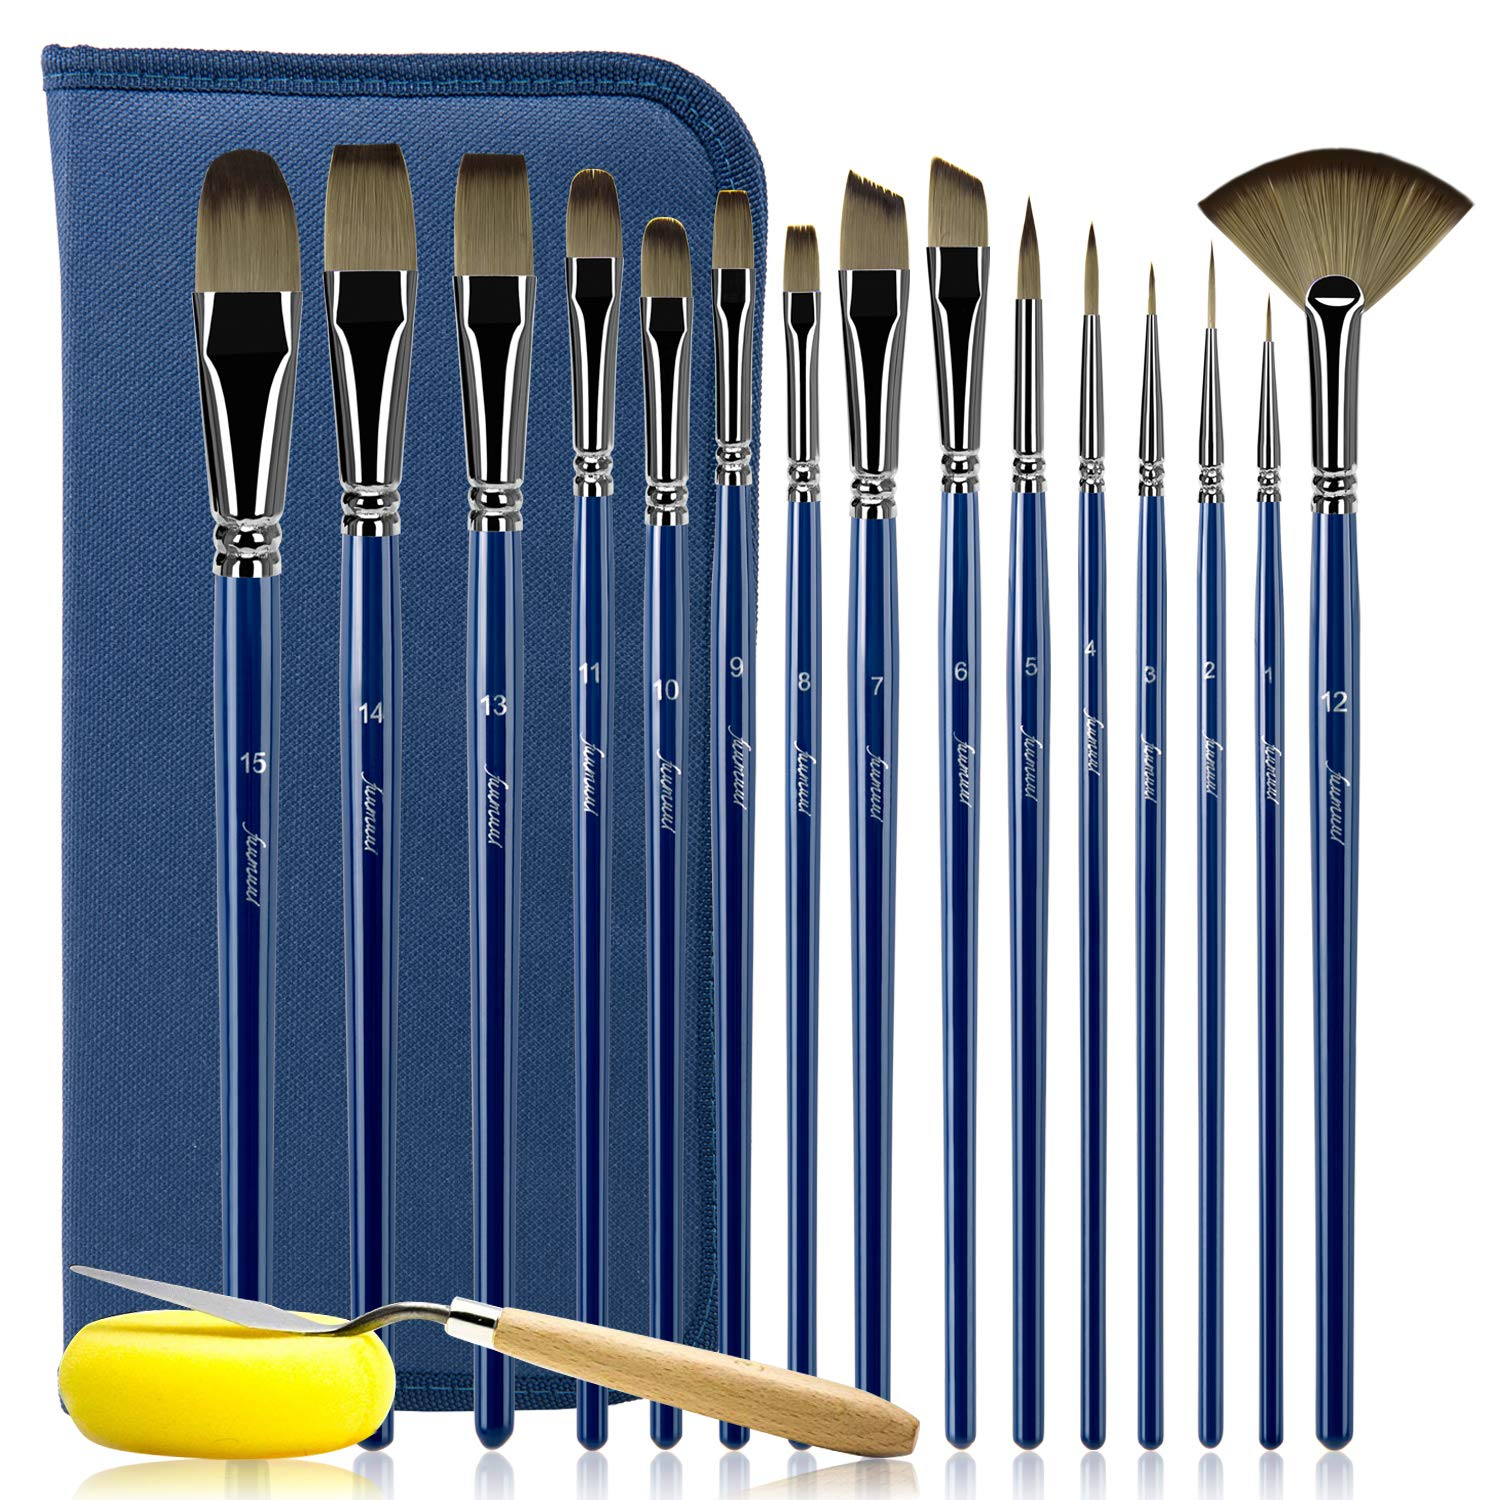 Watercolor Paint Brush Set - 15 Different Sizes Professional Artist Brushes for Acrylic Painting Oil Gouache - Perfect Gift for Artists, Adults & Kids (Navy Blue)